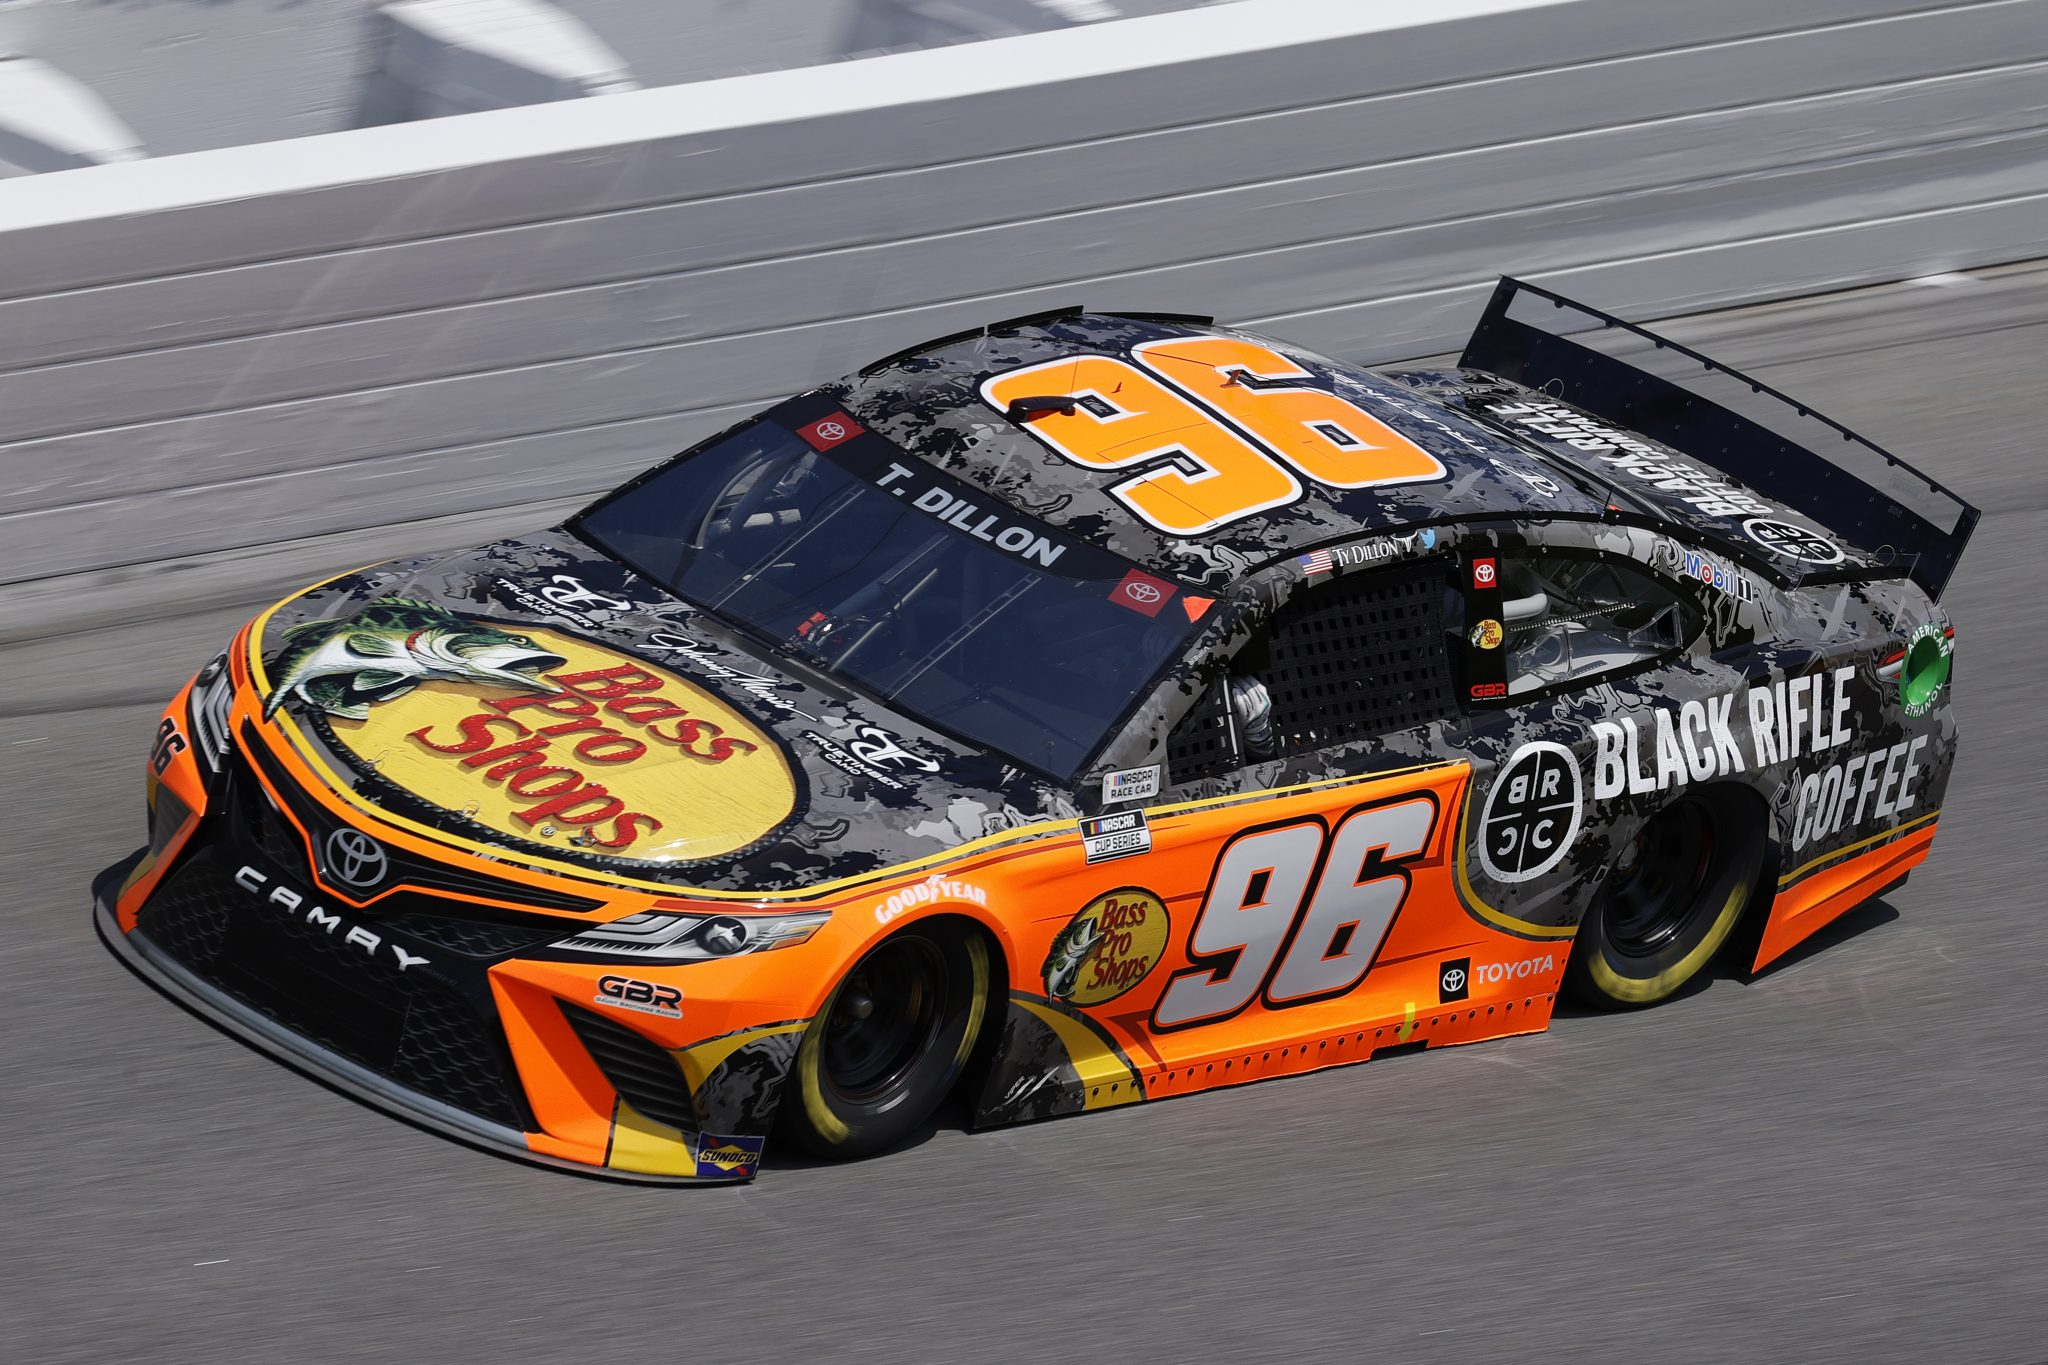 DAYTONA BEACH, FLORIDA - FEBRUARY 10: Ty Dillon, driver of the #96 Bass Pro Shops/Black Rifle Coffee Toyota, during practice for the NASCAR Cup Series 63rd Annual Daytona 500 at Daytona International Speedway on February 10, 2021 in Daytona Beach, Florida. (Photo by Jared C. Tilton/Getty Images) | Getty Images